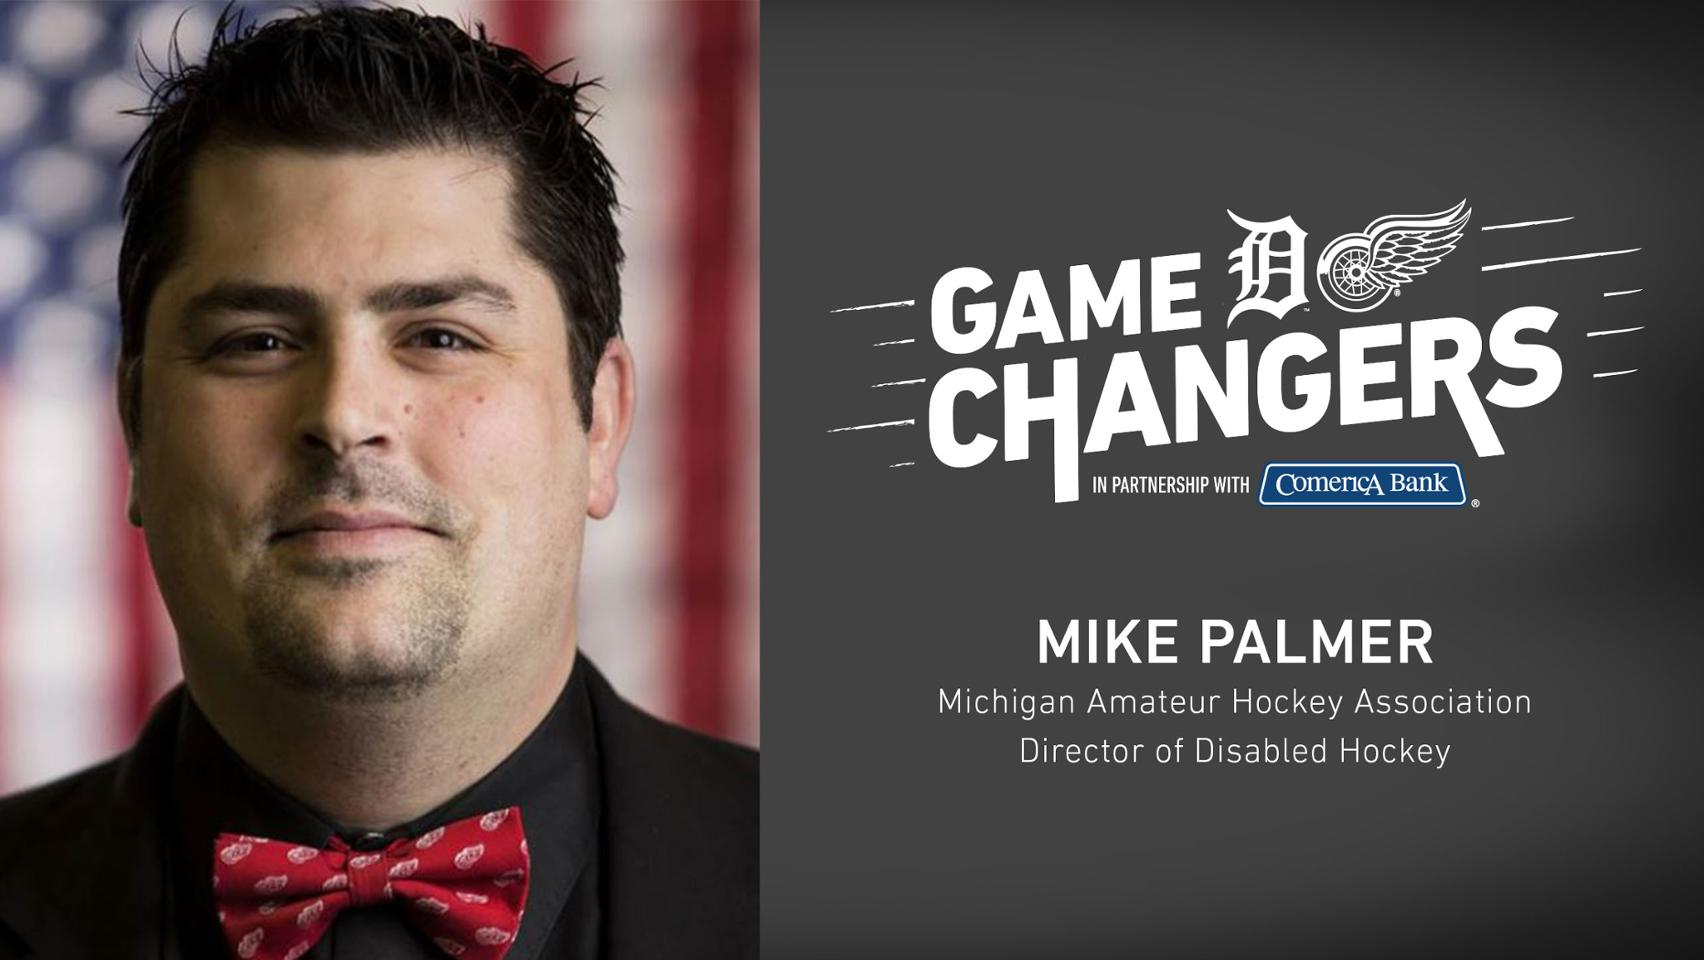 Mike Palmer